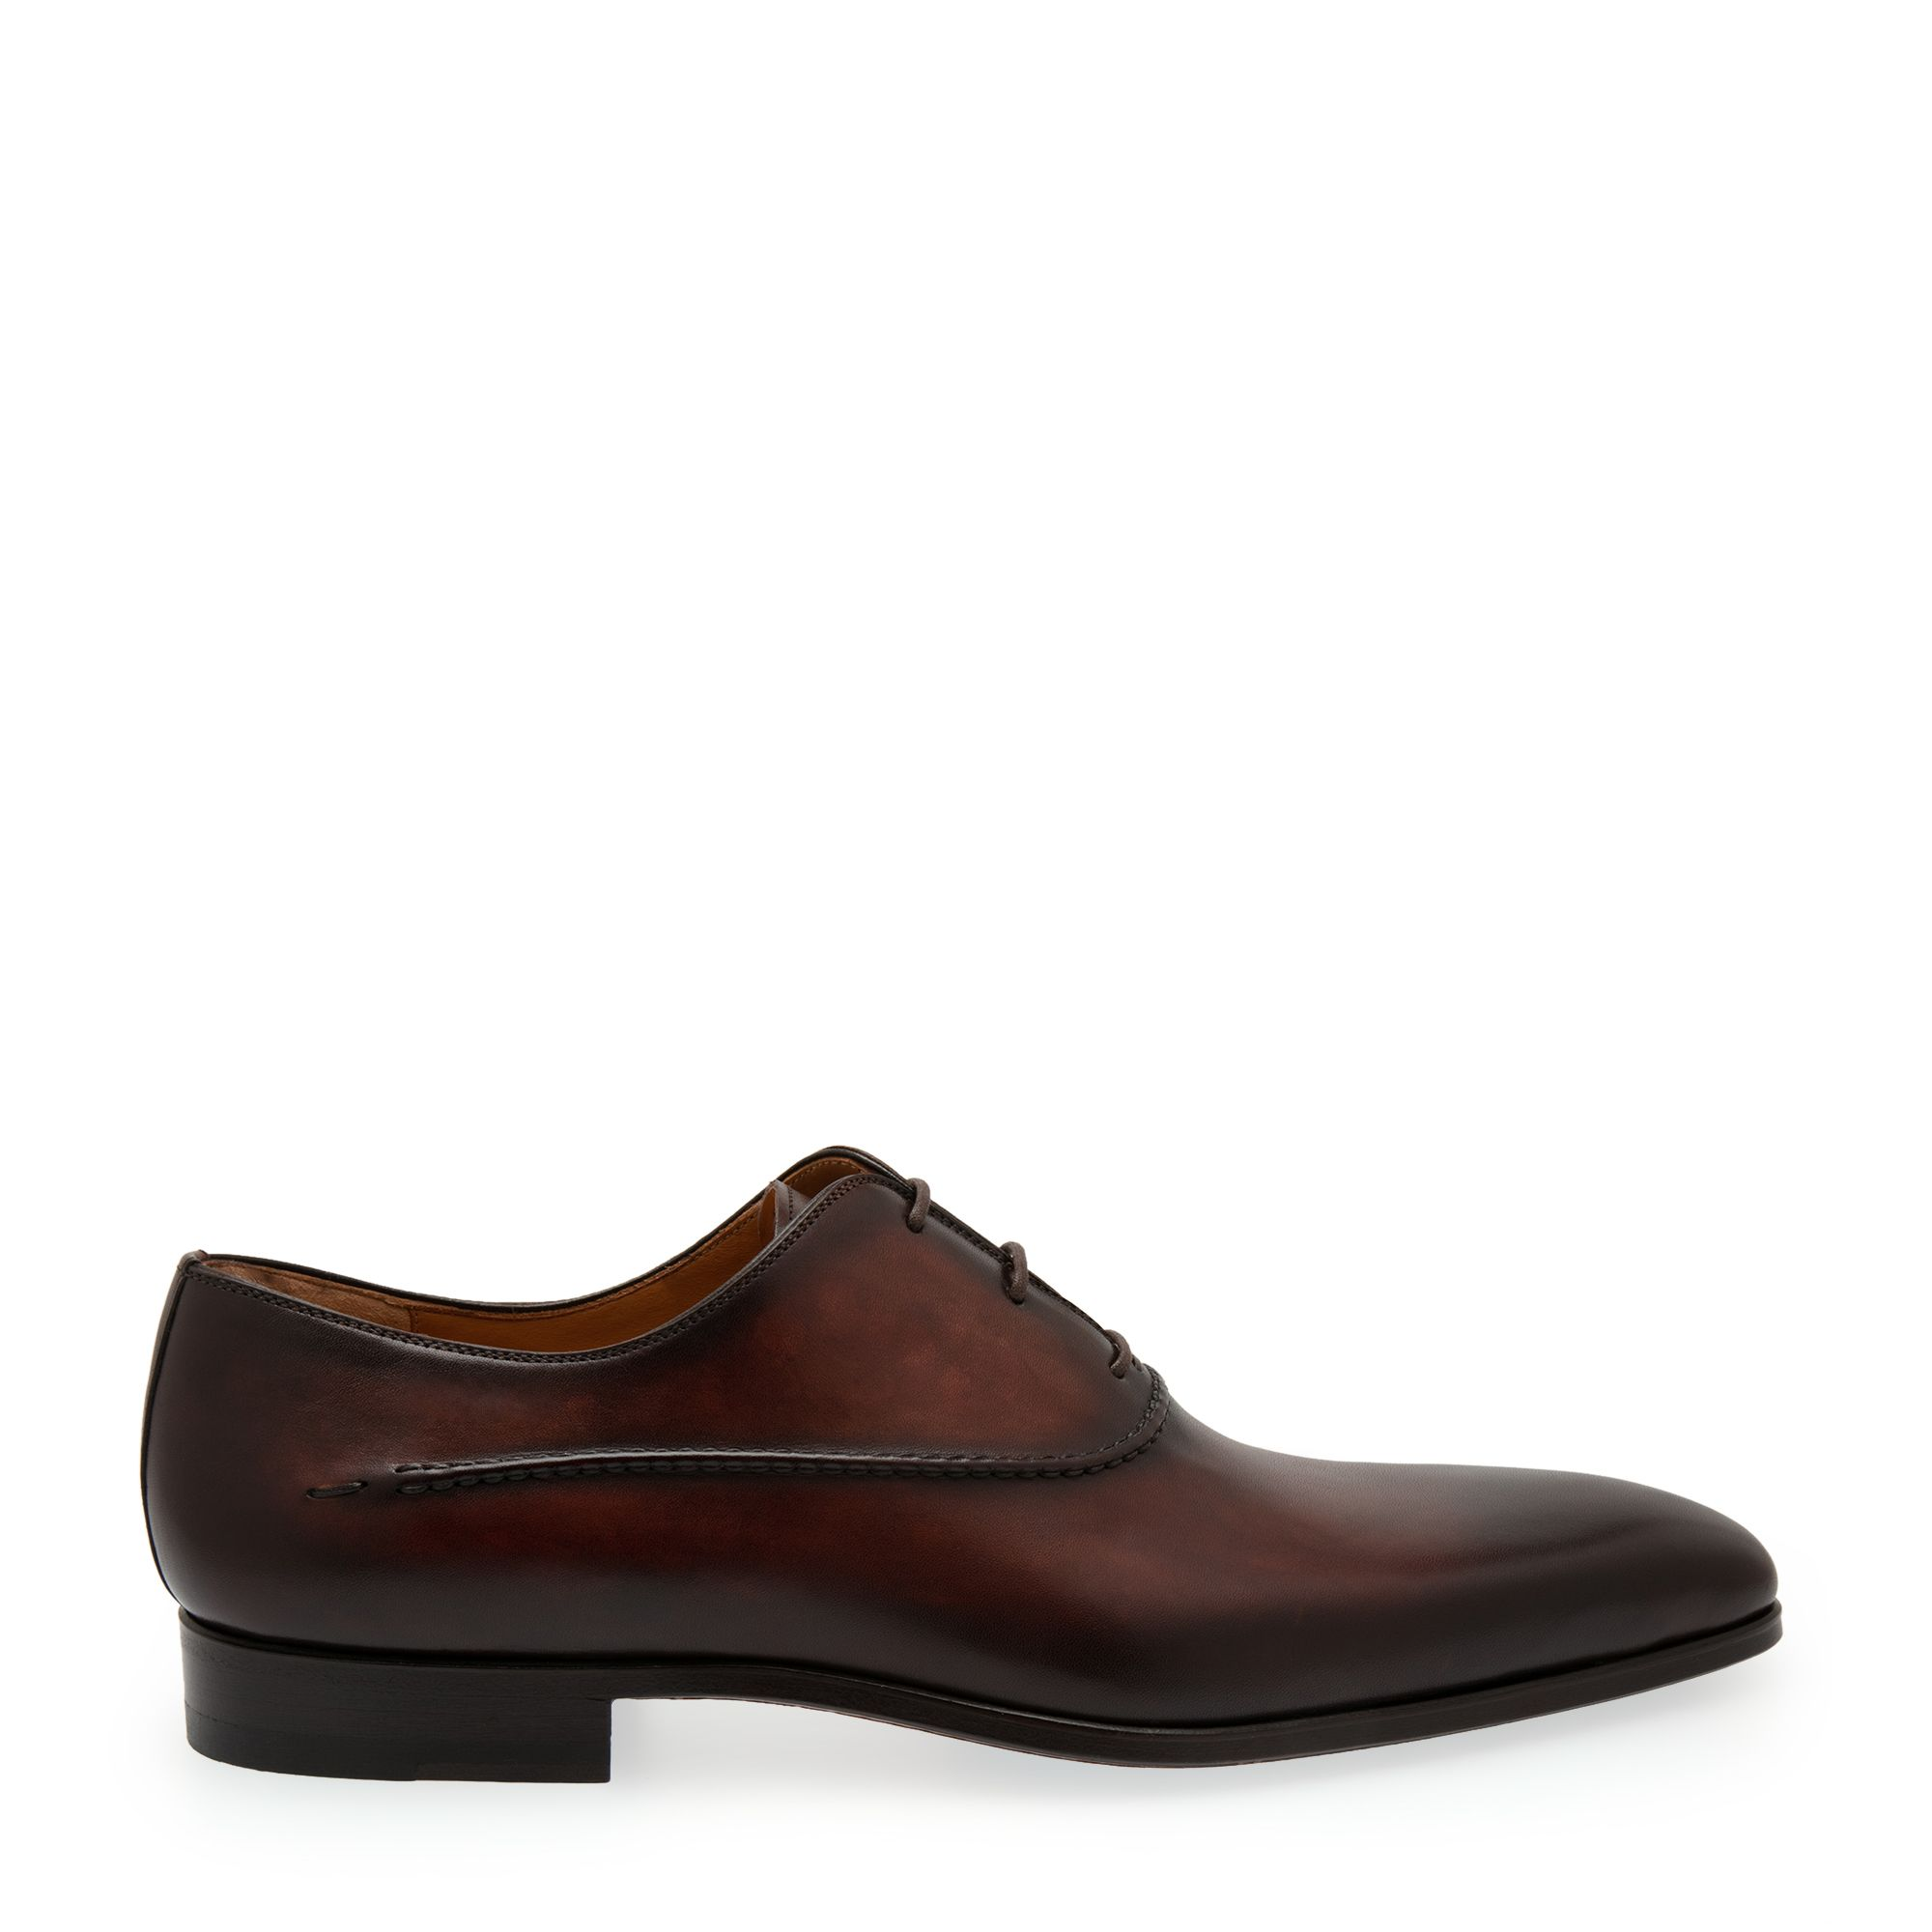 Leather oxford lace-up shoes